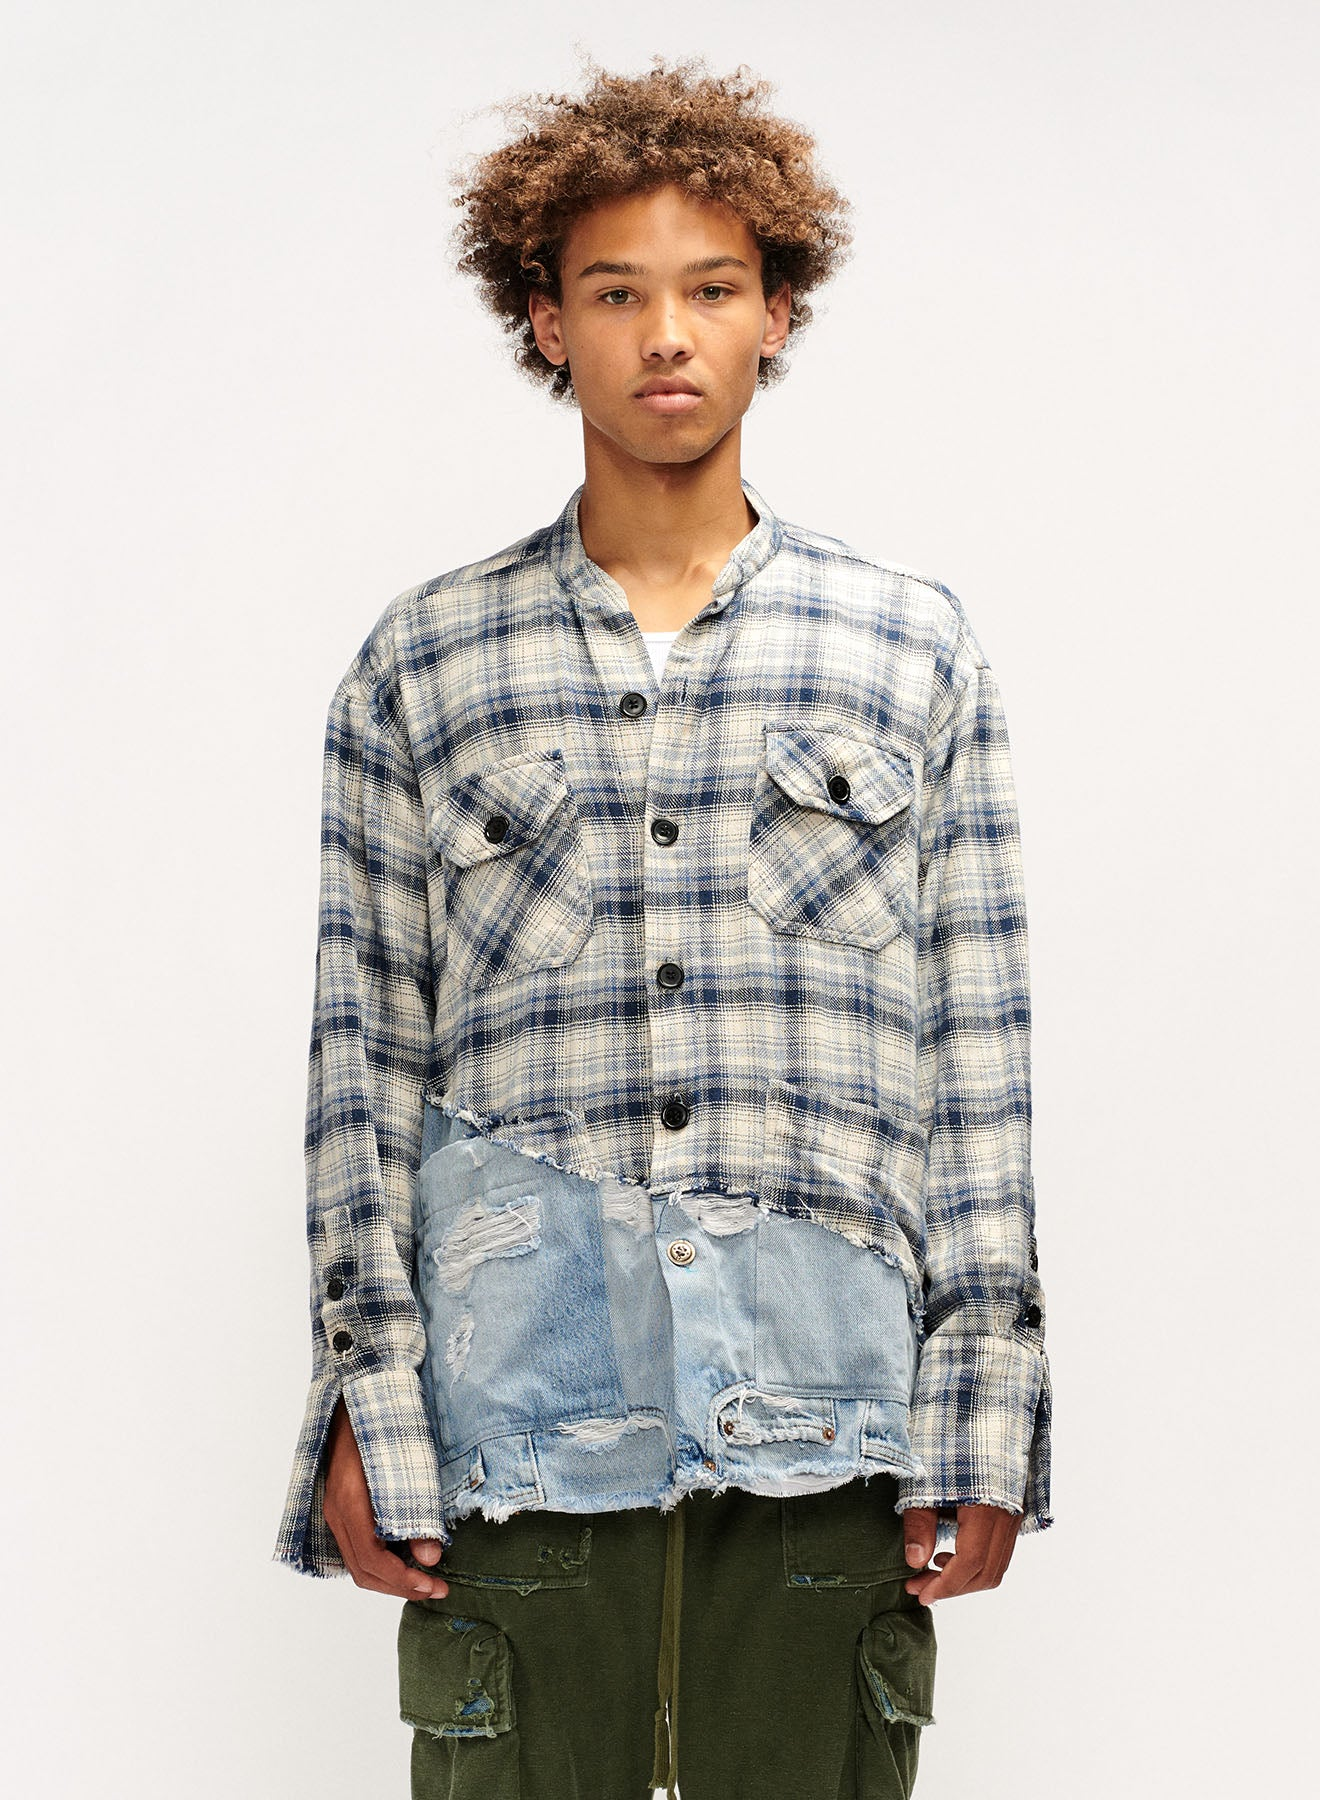 RIVER/DENIM 50-50 BOXY STUDIO